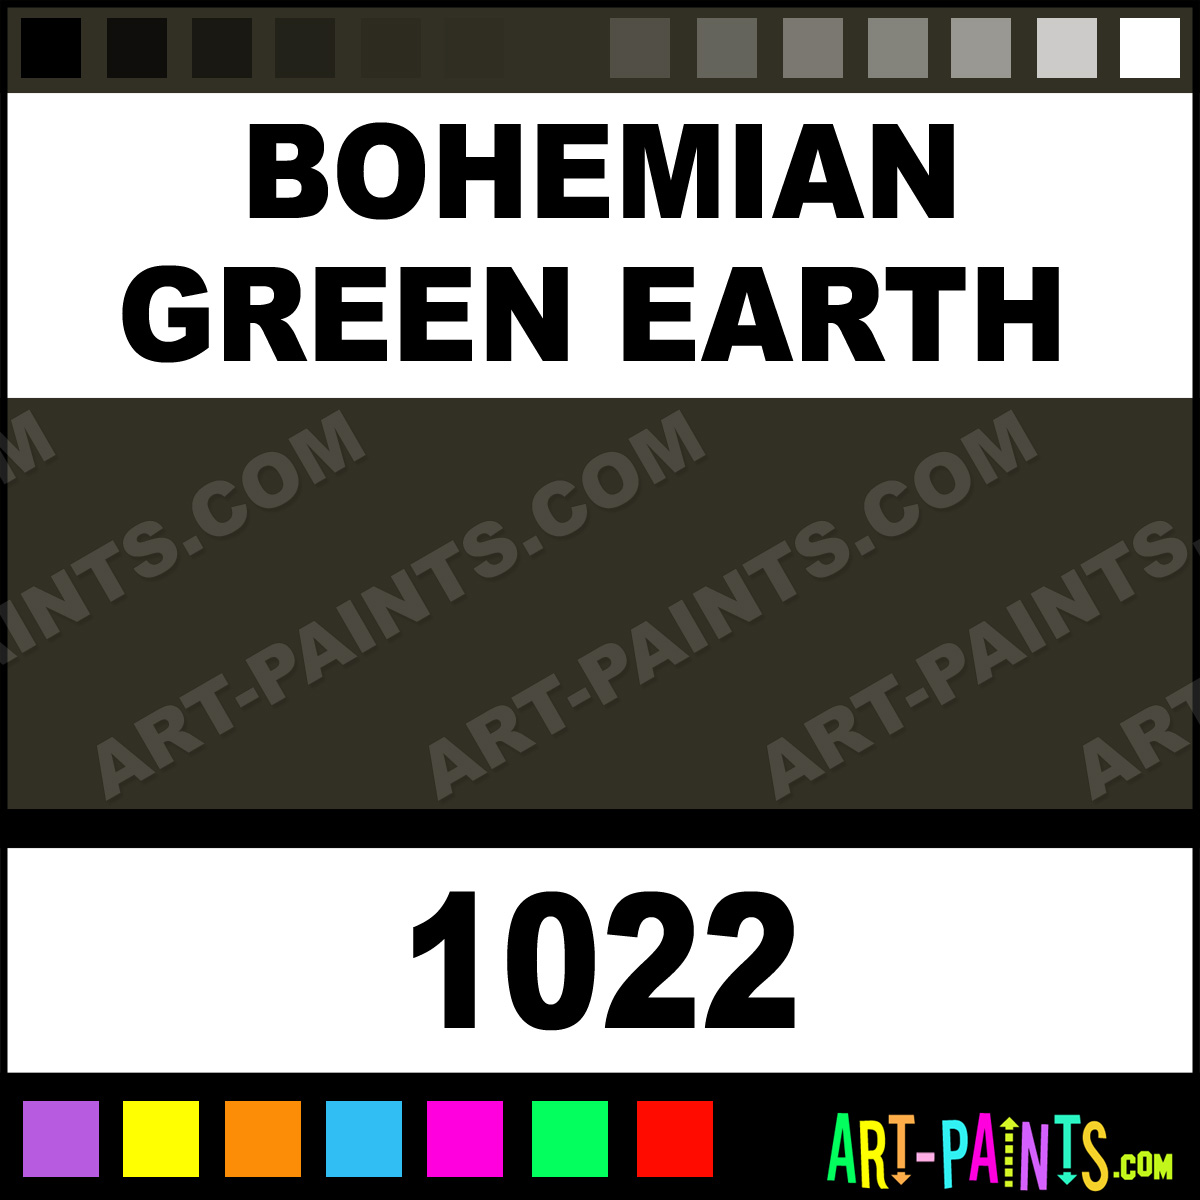 Bohemian green earth artist oil paints 1022 bohemian green 1022 by williamsburg artist paints nvjuhfo Image collections